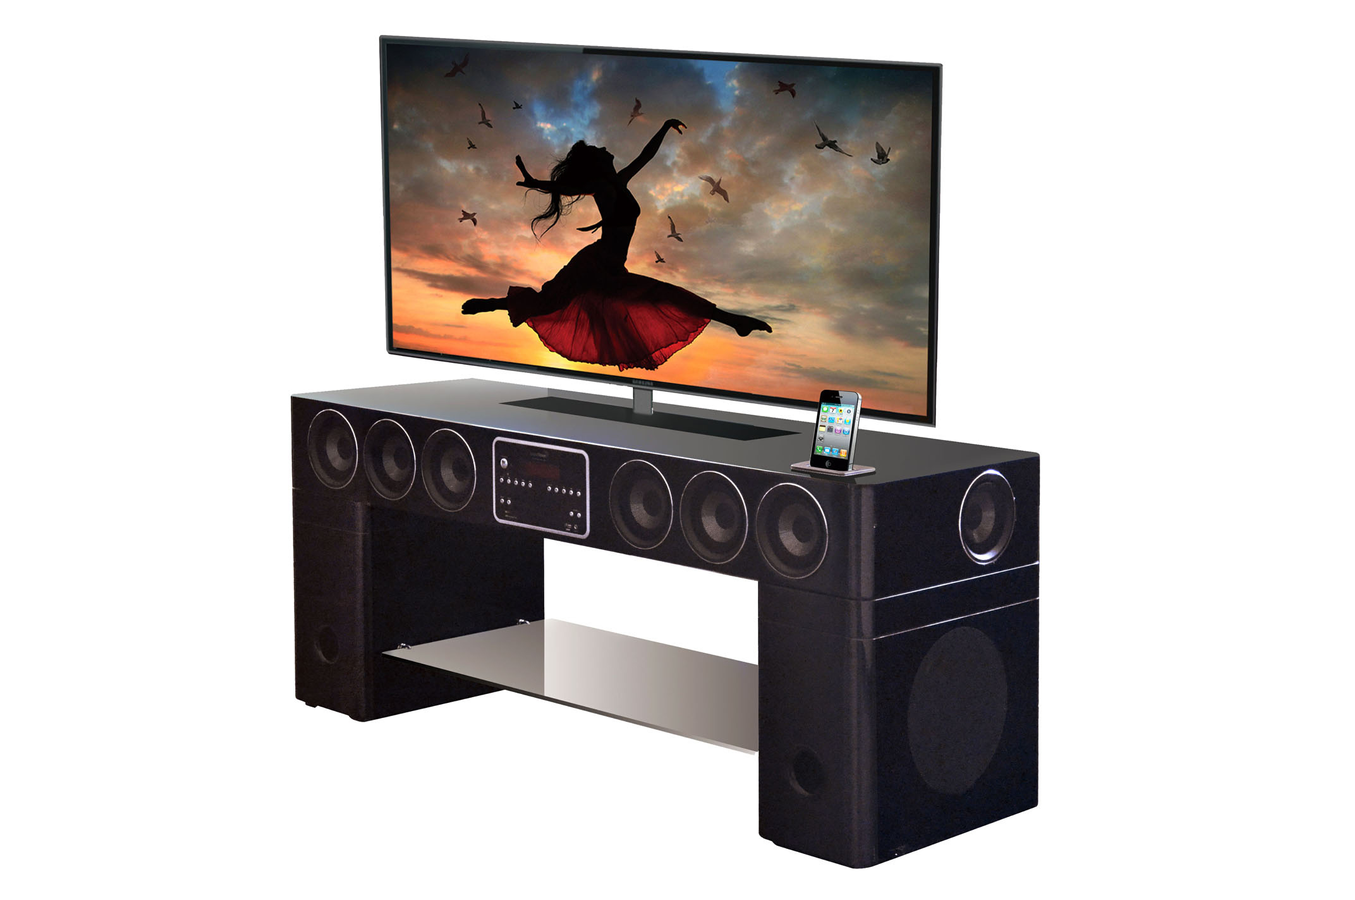 meuble tv soundvision sv 400b noir sv400b 3691985 darty. Black Bedroom Furniture Sets. Home Design Ideas